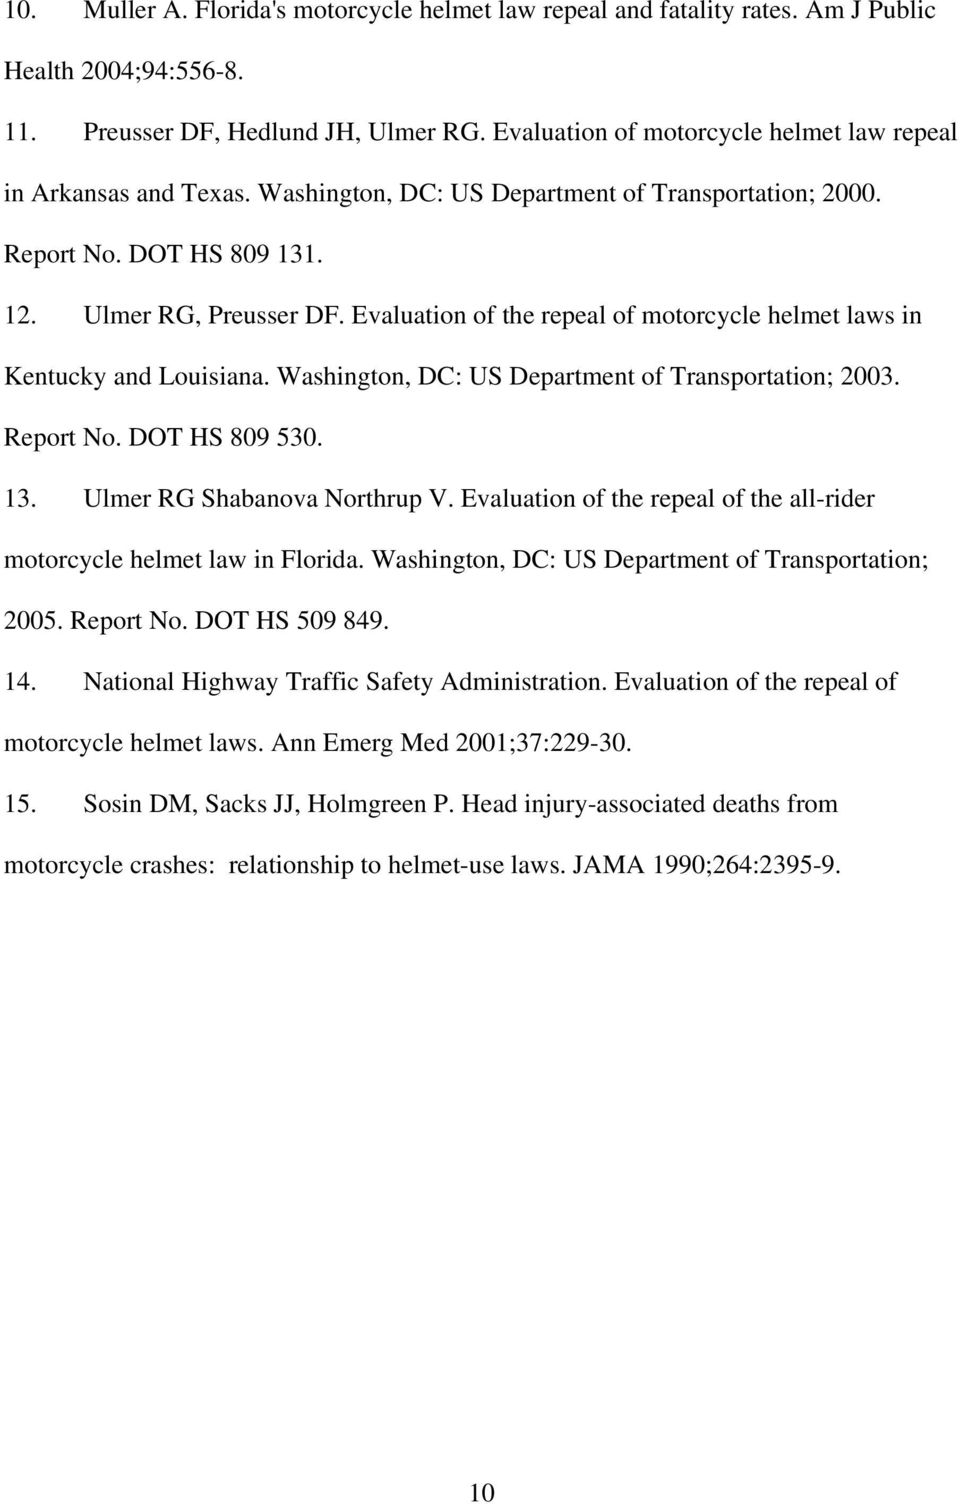 Evaluation of the repeal of motorcycle helmet laws in Kentucky and Louisiana. Washington, DC: US Department of Transportation; 2003. Report No. DOT HS 809 530. 13. Ulmer RG Shabanova Northrup V.